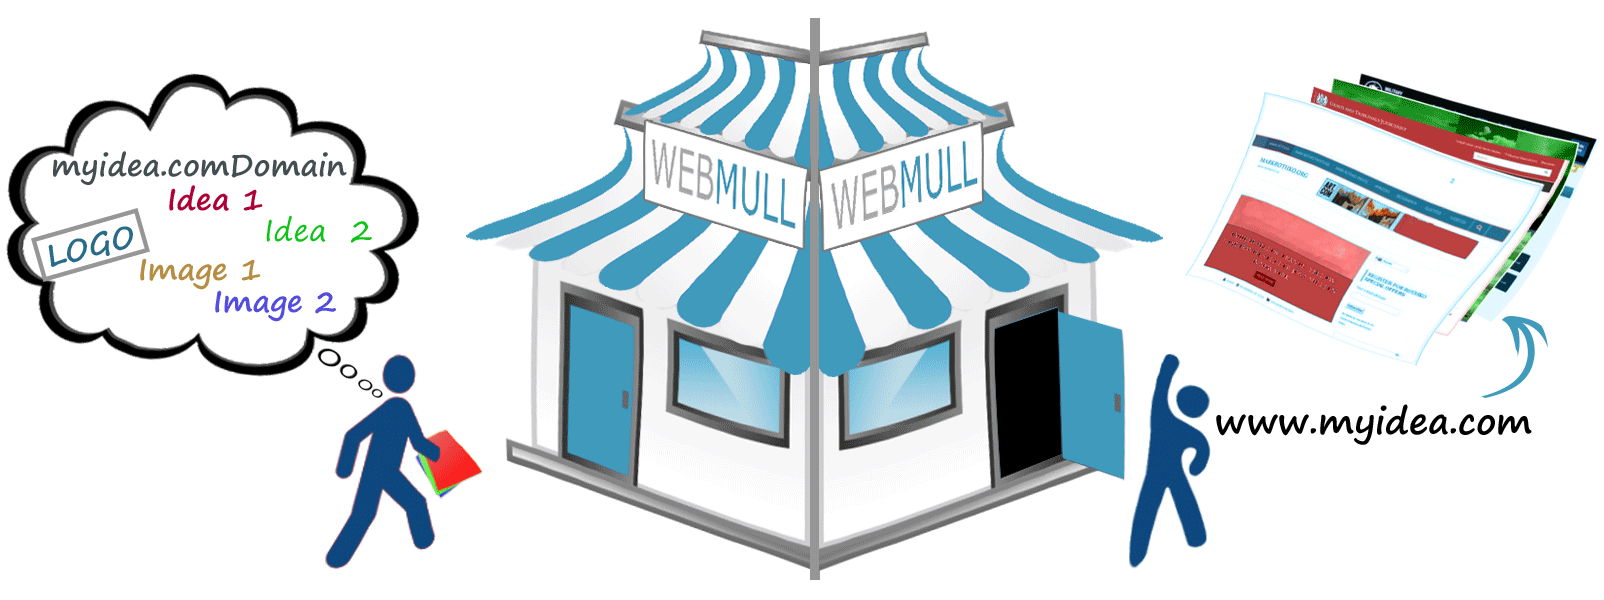 Webmull is web development company in vadodara baroda gujarat india, who convert your idea into reality